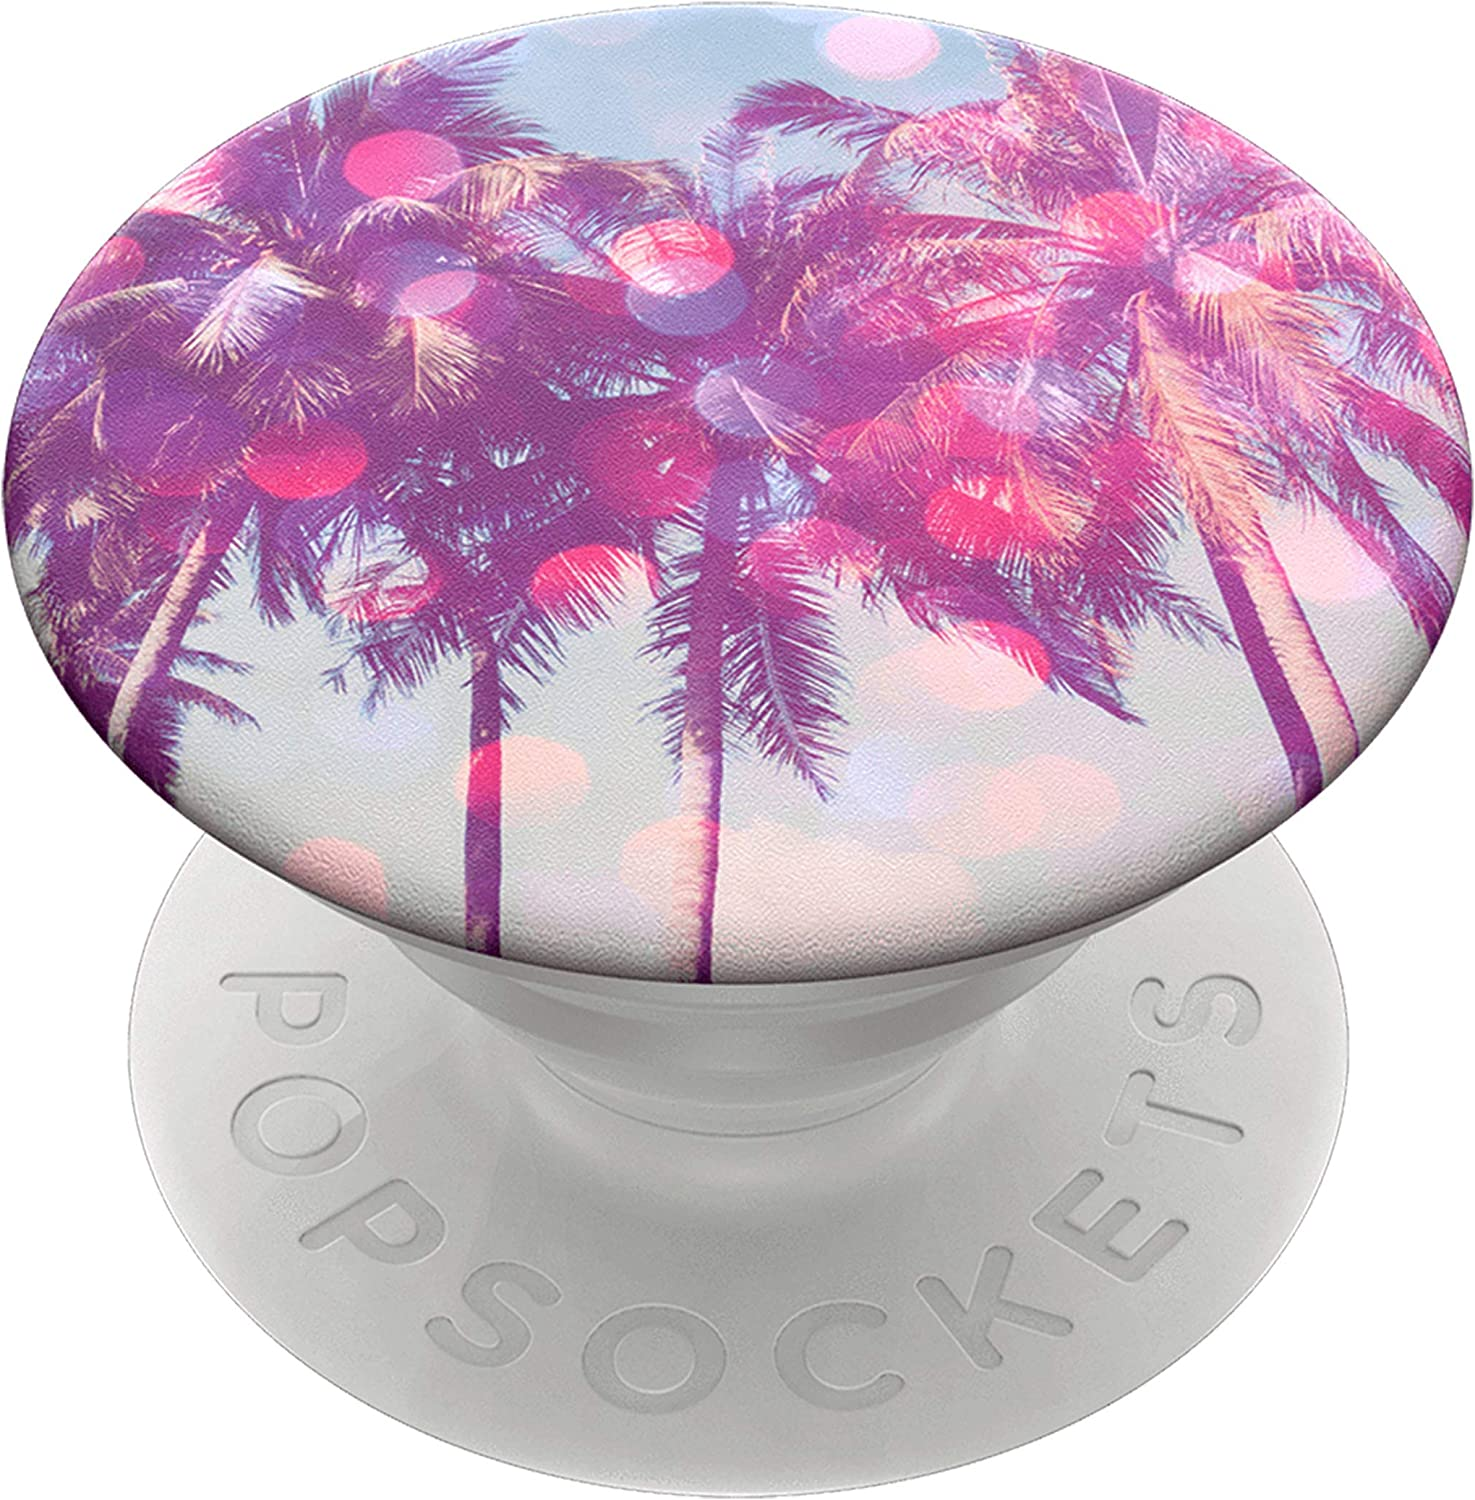 PopGrip with Swappable Top for Phones and Tablets Venice Beach PopSockets